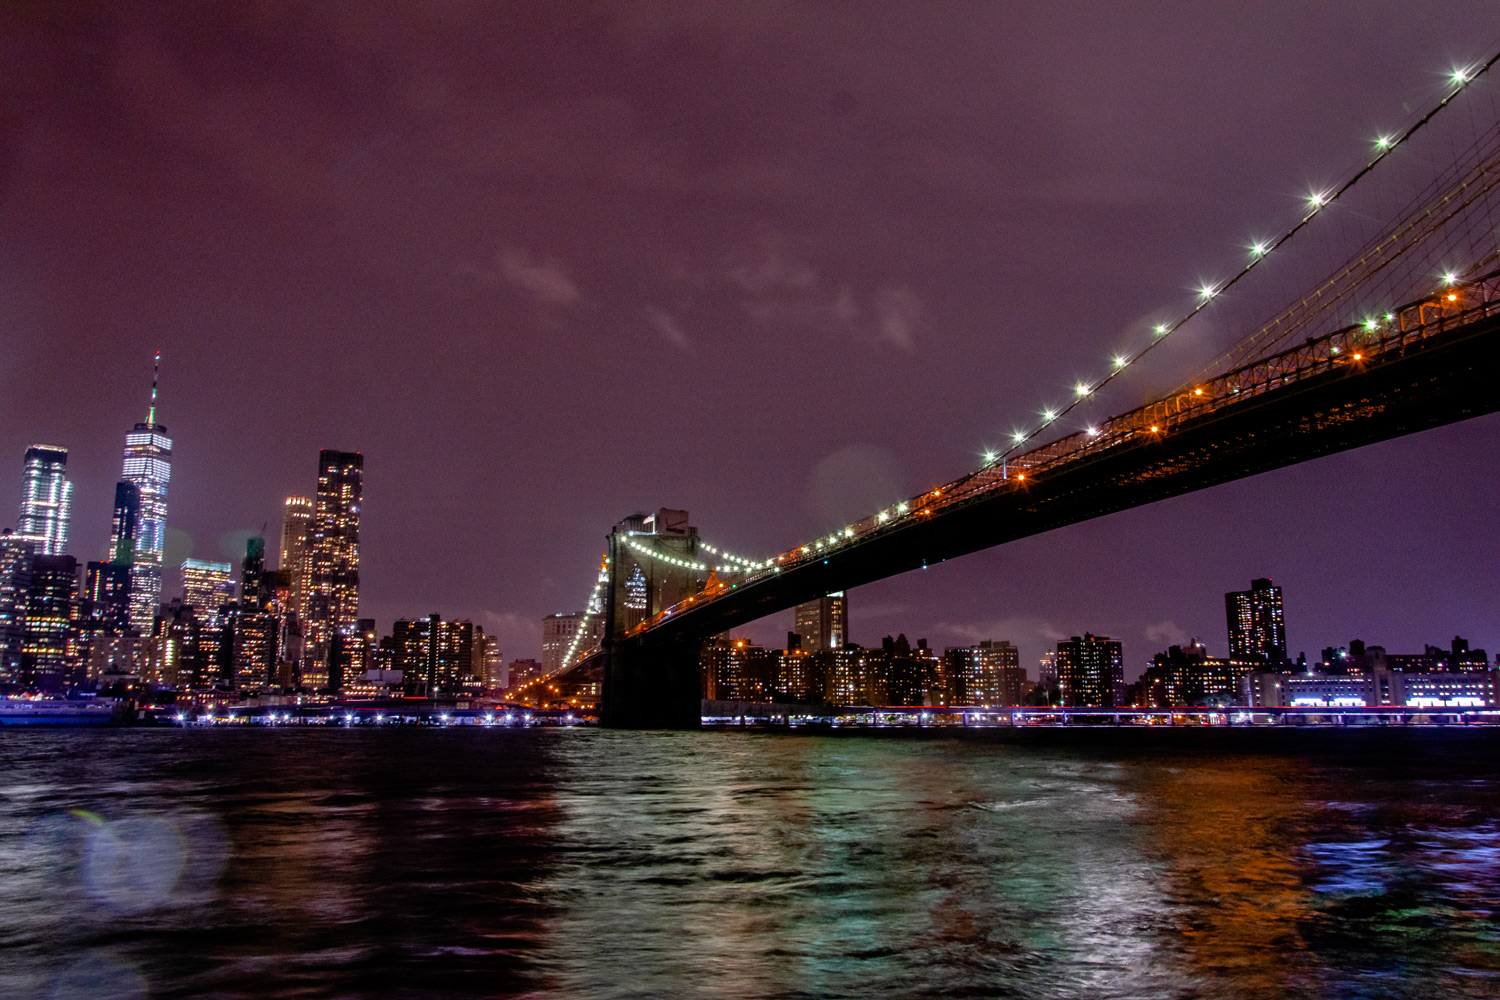 Brooklyn_Bridge_Park_New_York_City_2018_Ruo_Ling_Lu.jpg